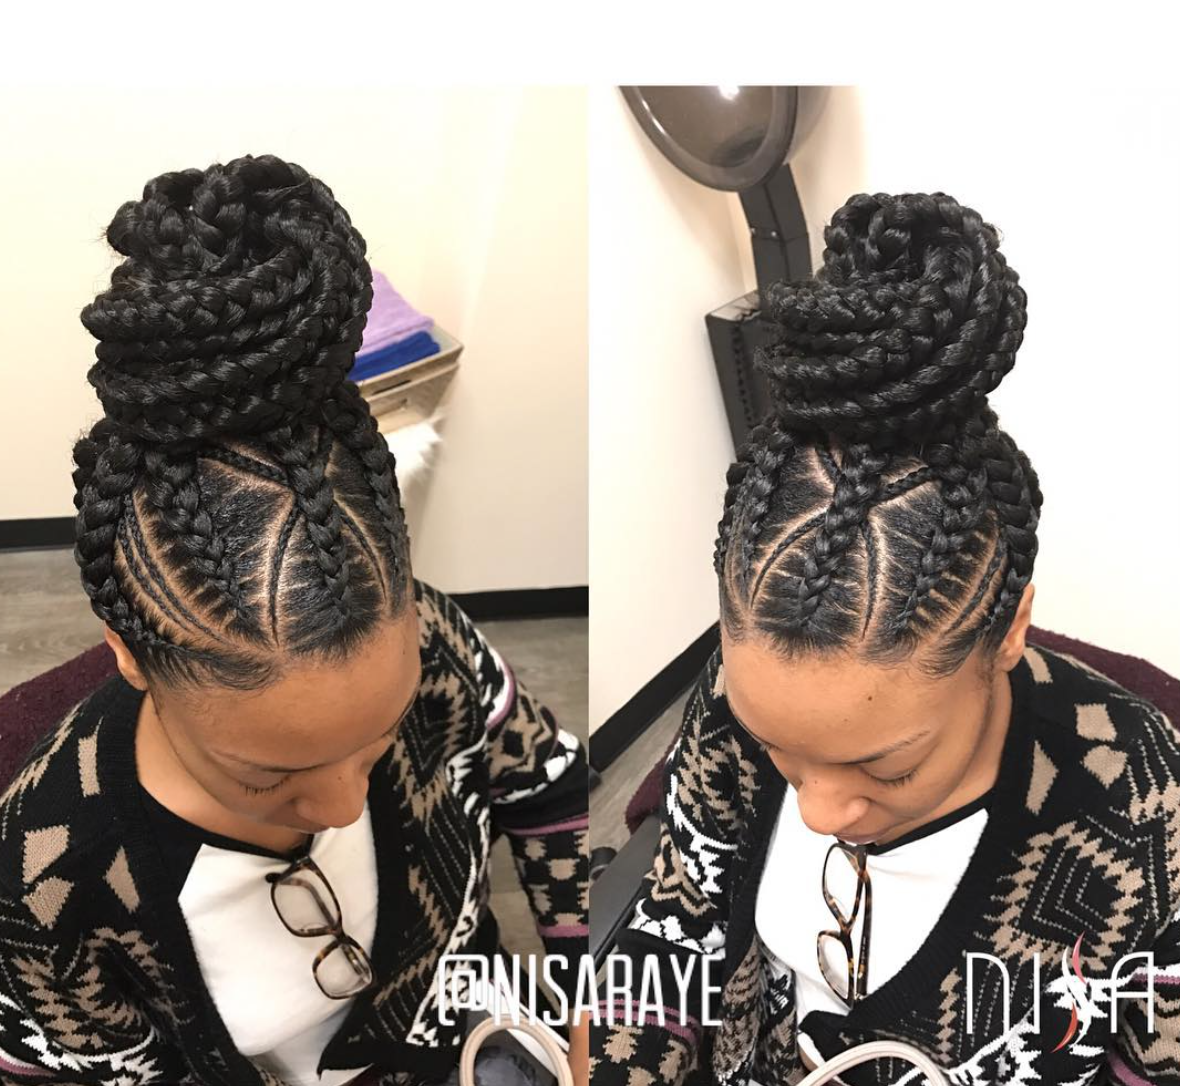 12 pretty african american braided hairstyles african hair love this braided up do by nisaraye black hair information pmusecretfo Image collections